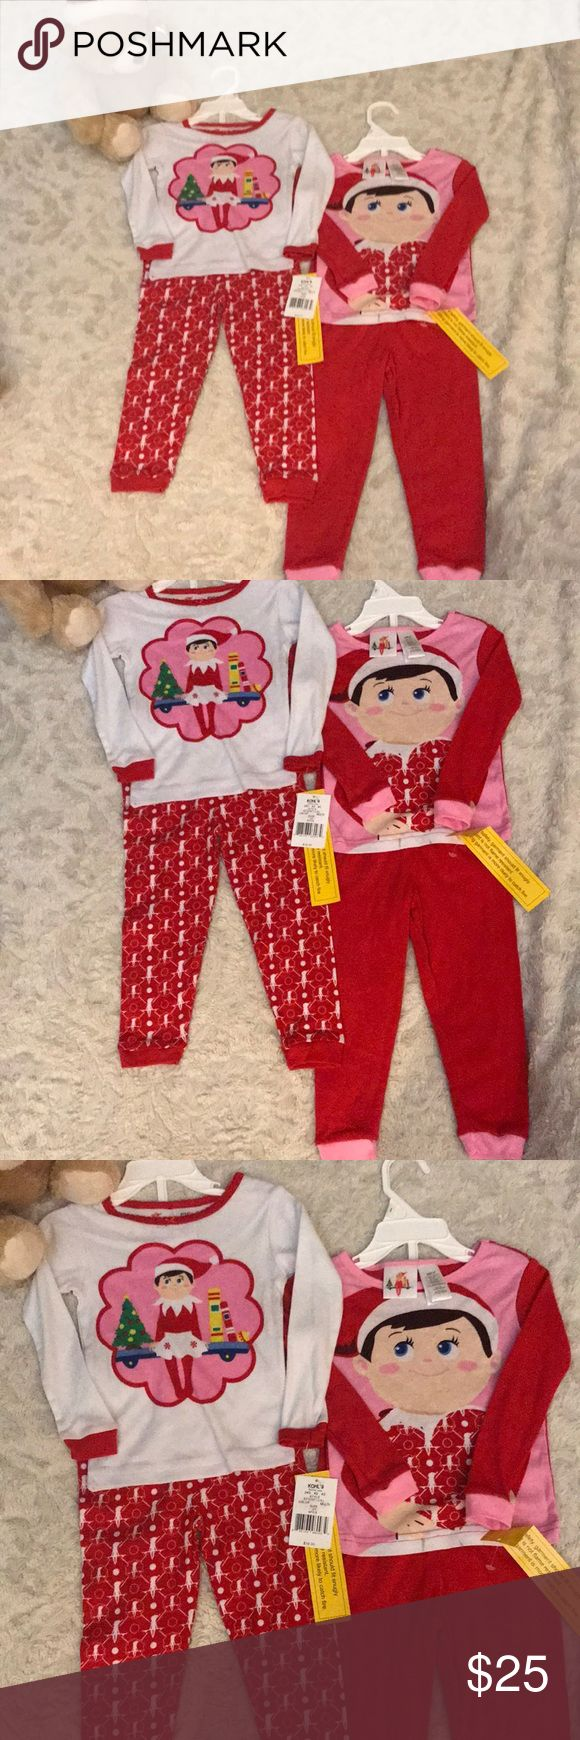 The Elf on The Shelf 2 Pajama Sets Sz 3T New with tags  Holiday Pajamas 2 sets  4 pieces 2 Pants and 2 tops Size 3T  Color White and Red  Please check my other listings i can combine shipping for you  Location : Winter Box the elf on the shelf Pajamas Pajama Sets